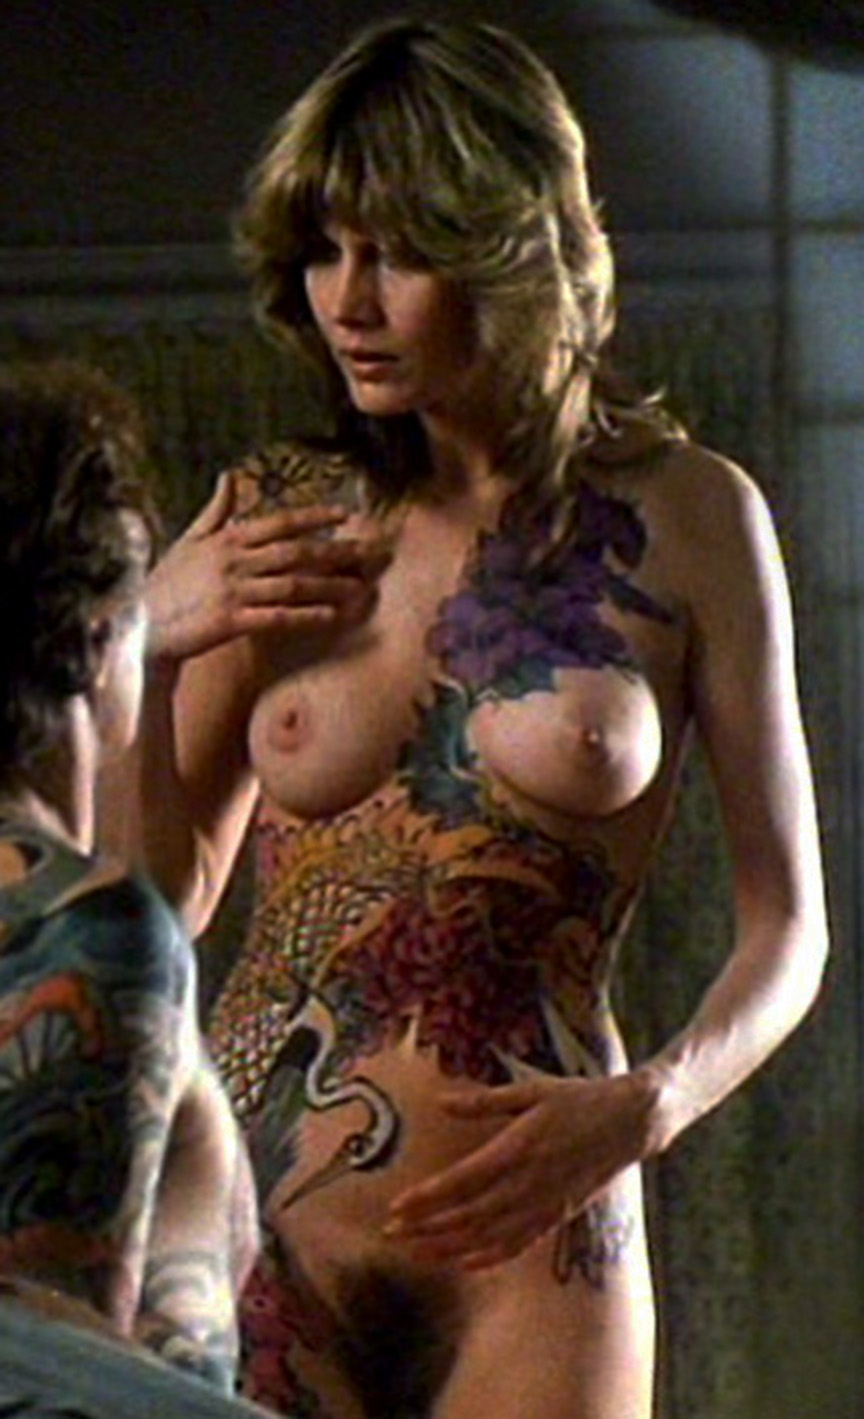 You nude nipples of bond girls